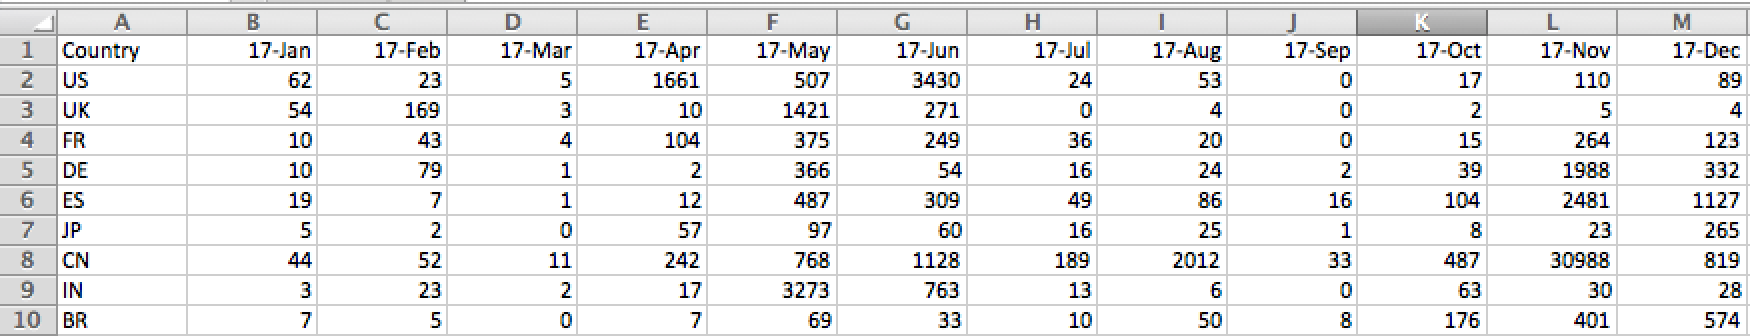 How to convert Excel Numeric Dates to Date Data Type in R?